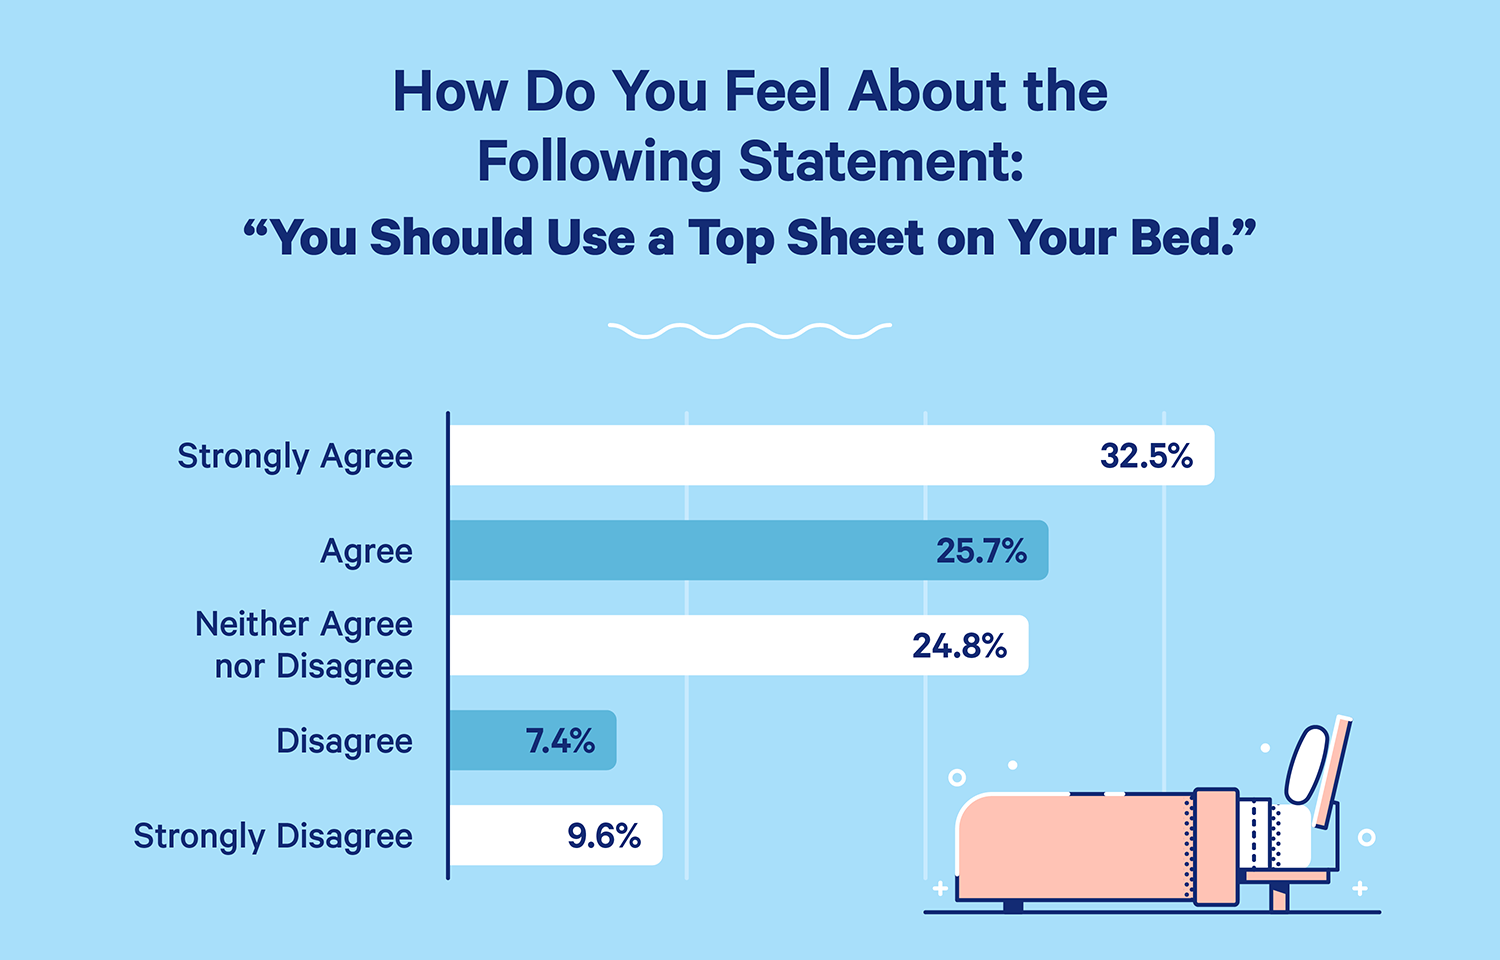 Survey question: How do you feel about the following statement: You should Use a Top Sheet on Your Bed. Survey results: 32.5% strongly agree, 25.7% agree, 24.8% neither agree or disagree, 7.4% disagree, and 9.6% strongly disagree.